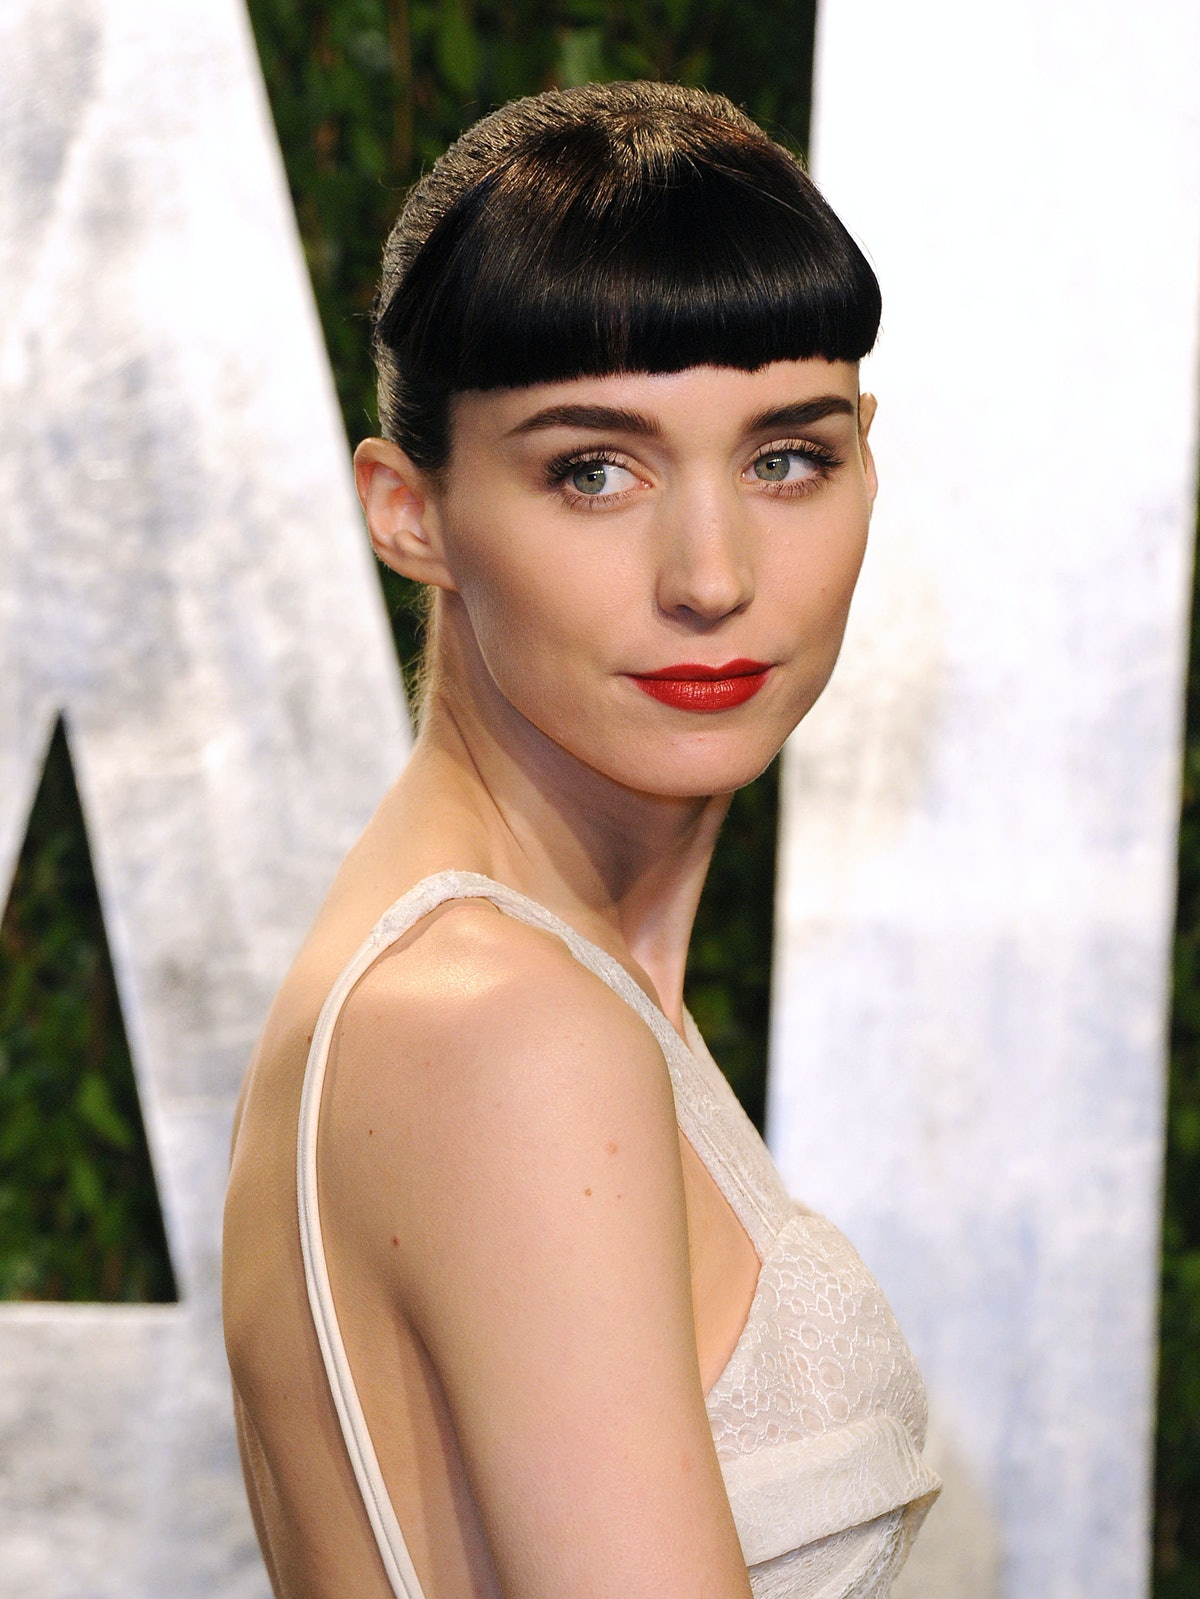 Actor Rooney Mara attends the 2012 Vanity Fair Oscar Party with micro bangs.